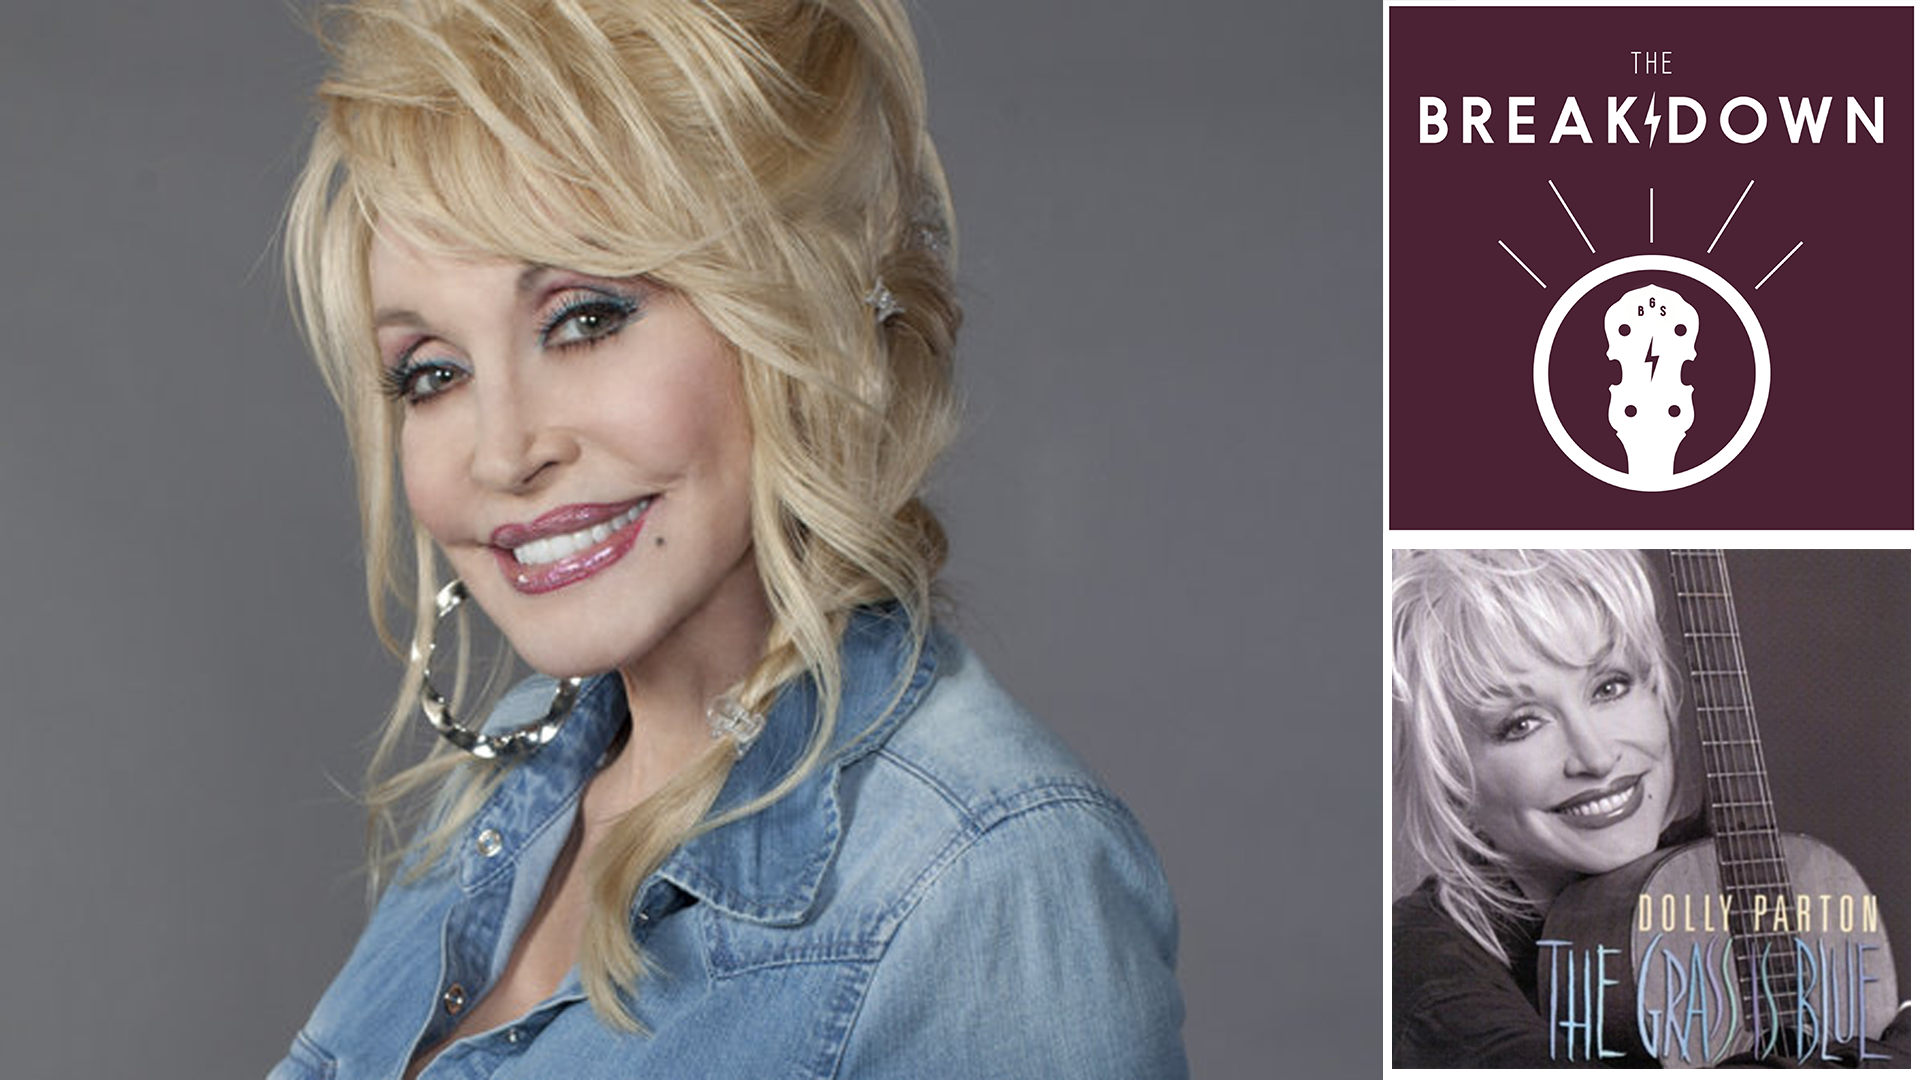 The Breakdown – Dolly Parton, 'The Grass Is Blue'